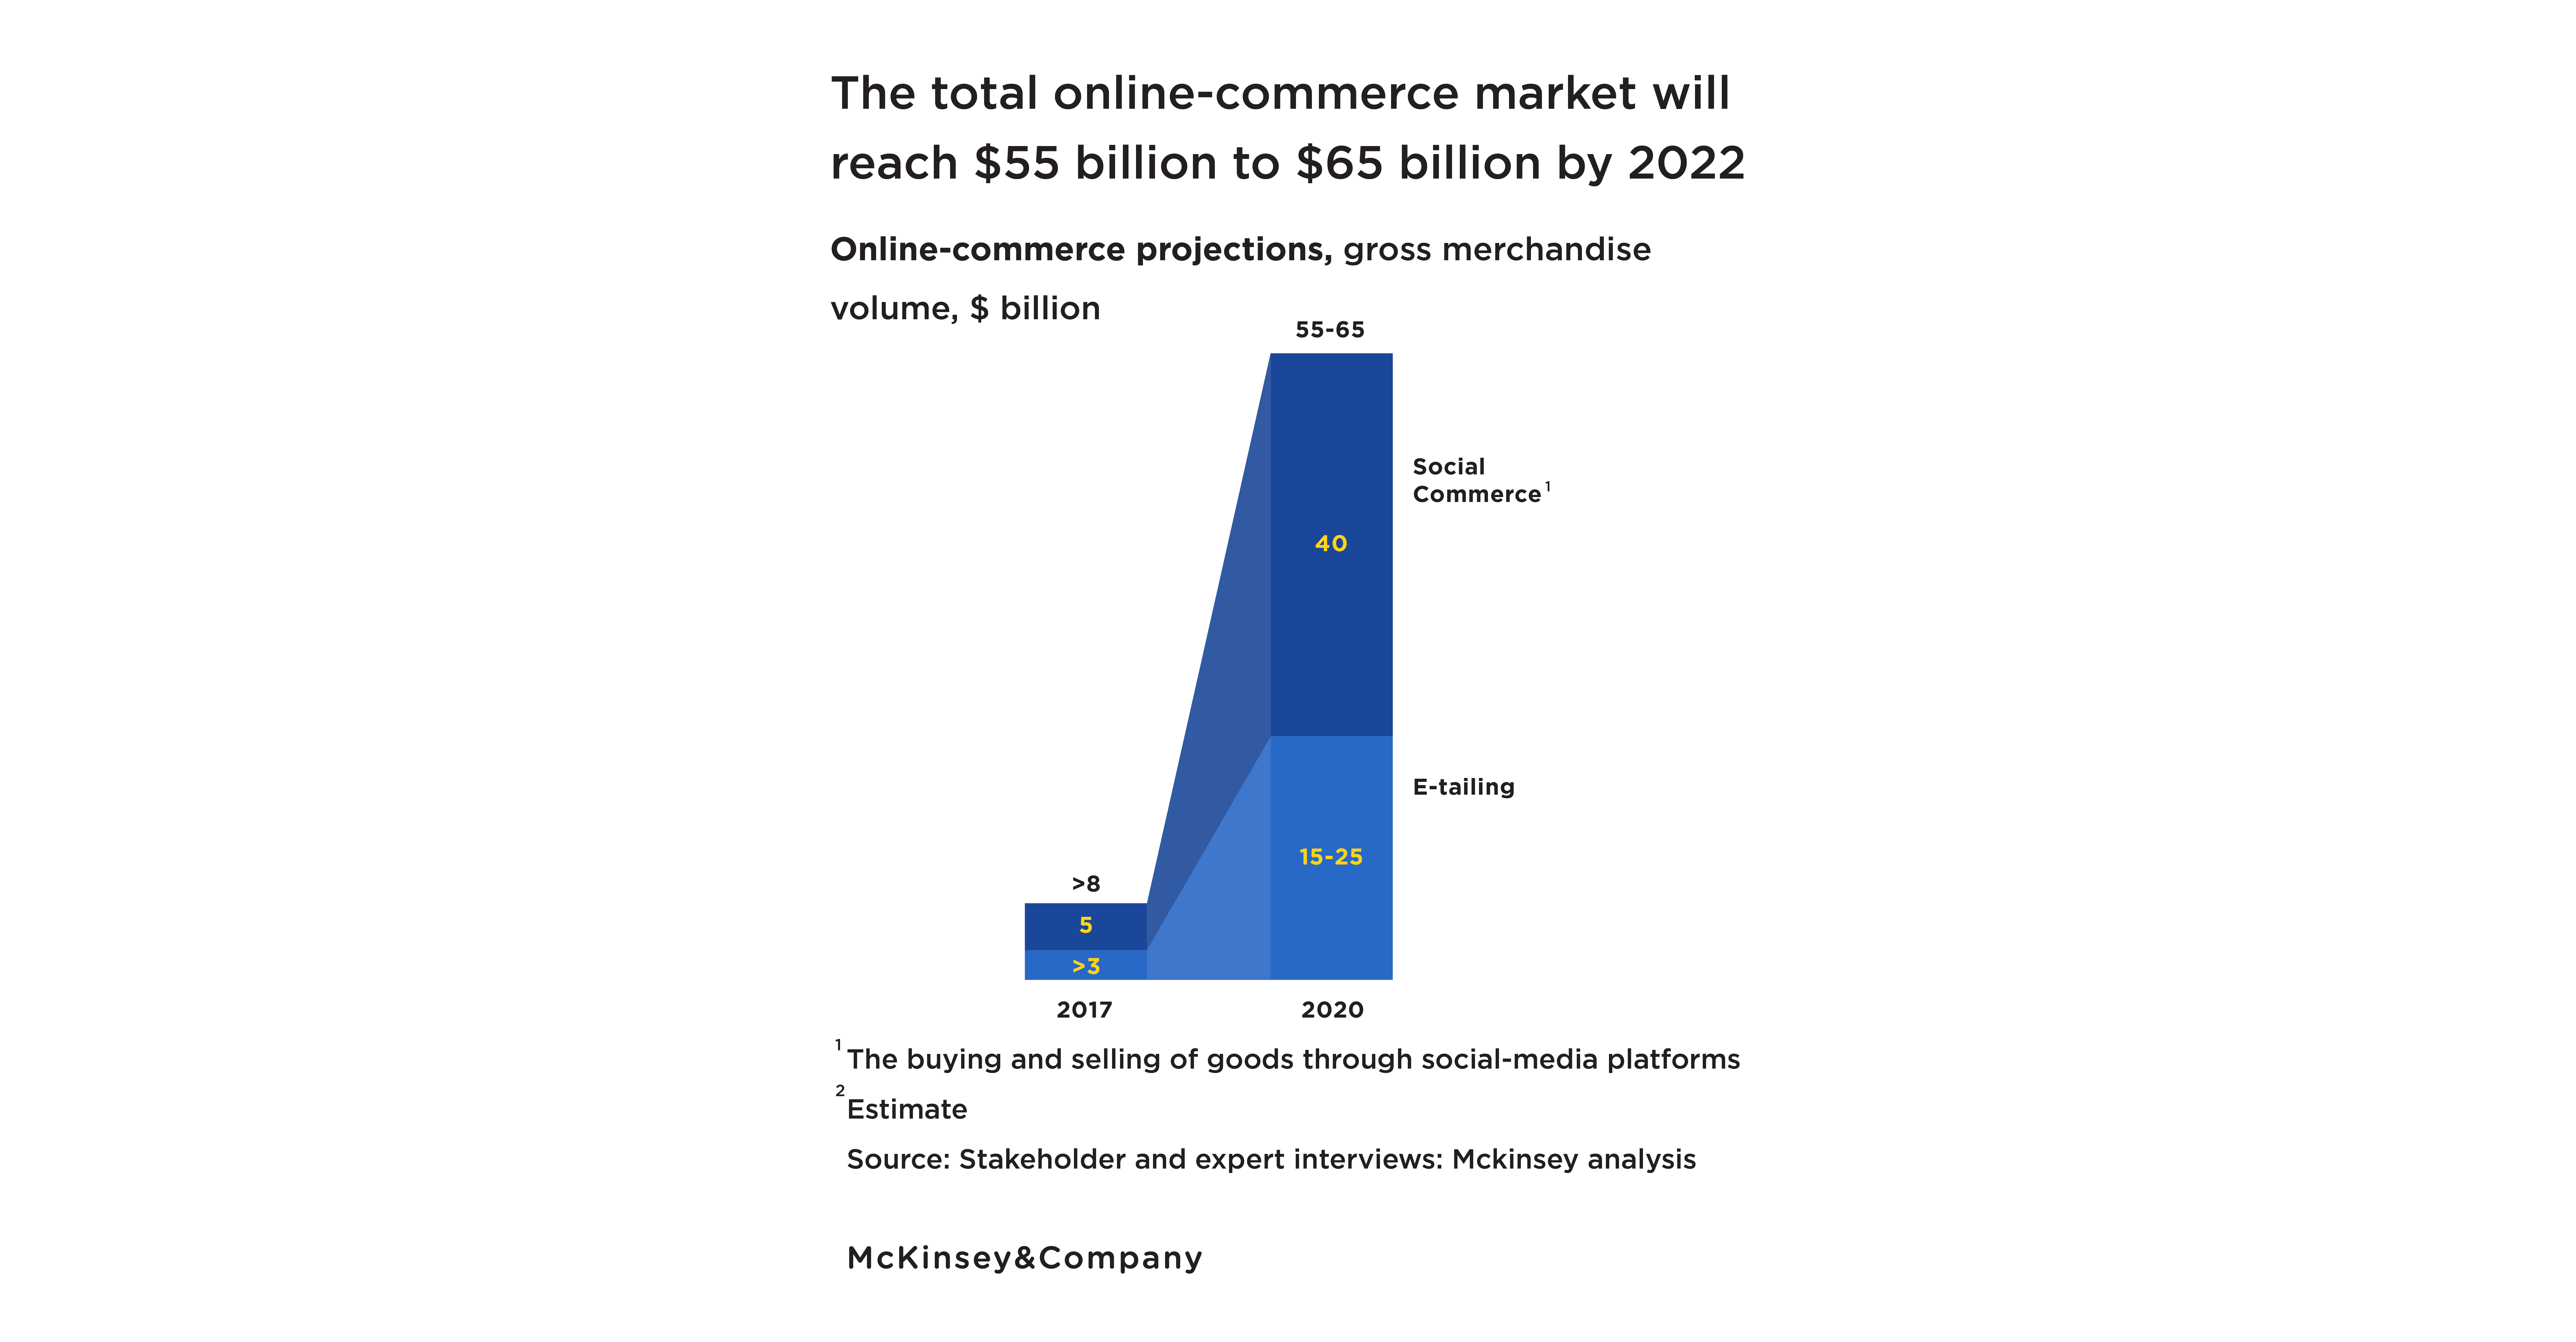 Social commerce is expected to grow 8 folds by 2022